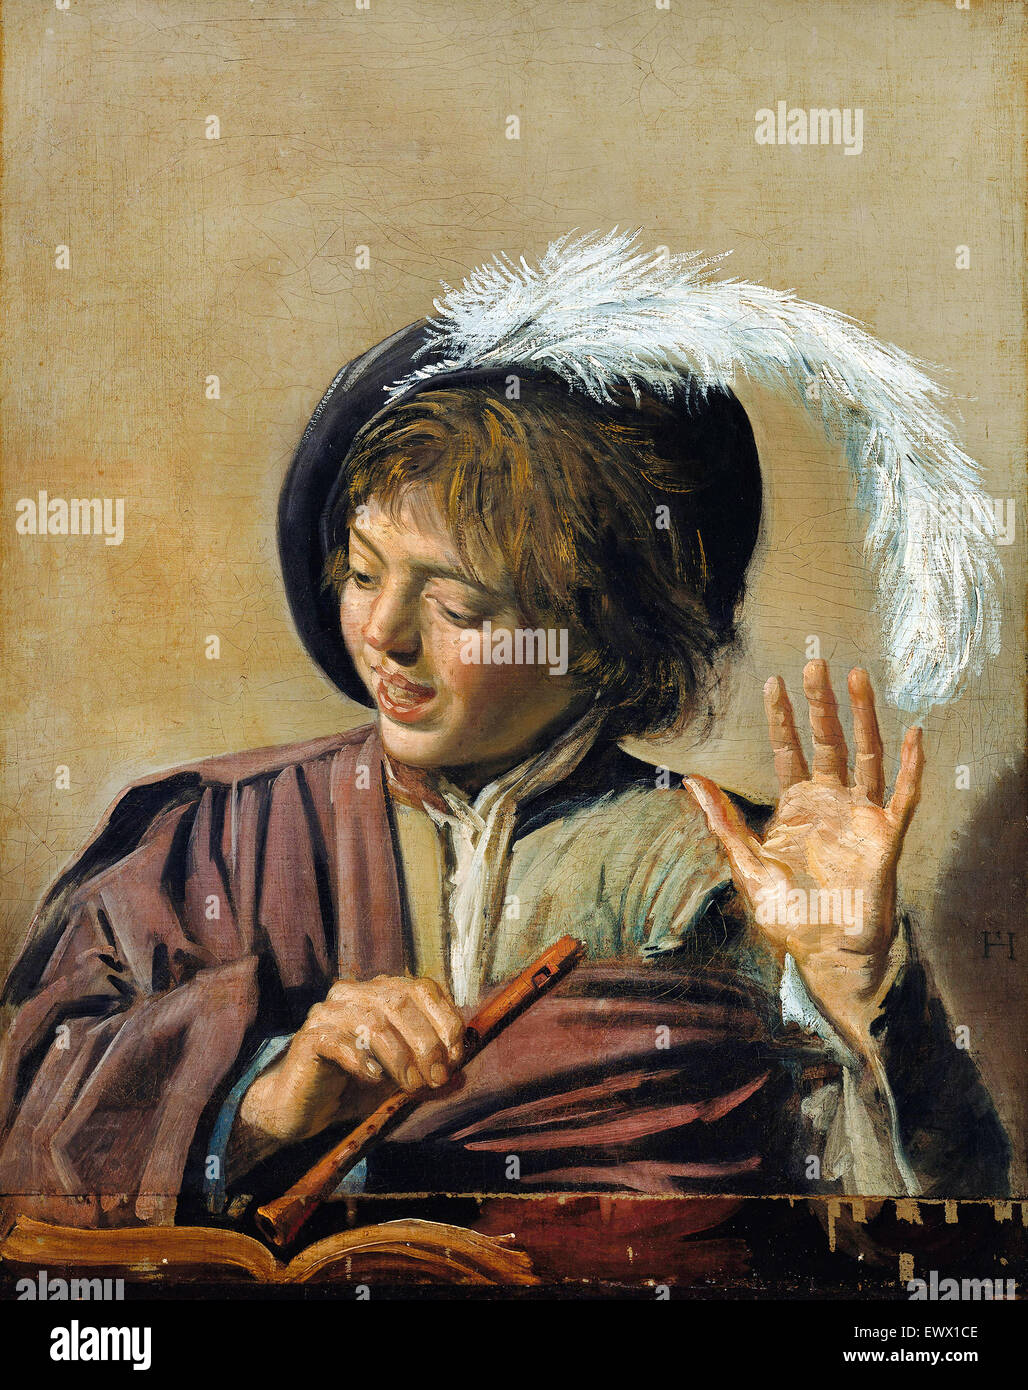 Frans Hals, Singing Boy with Flute. Circa 1623. Oil on canvas. Gemaldegalerie, Berlin, Germany. - Stock Image